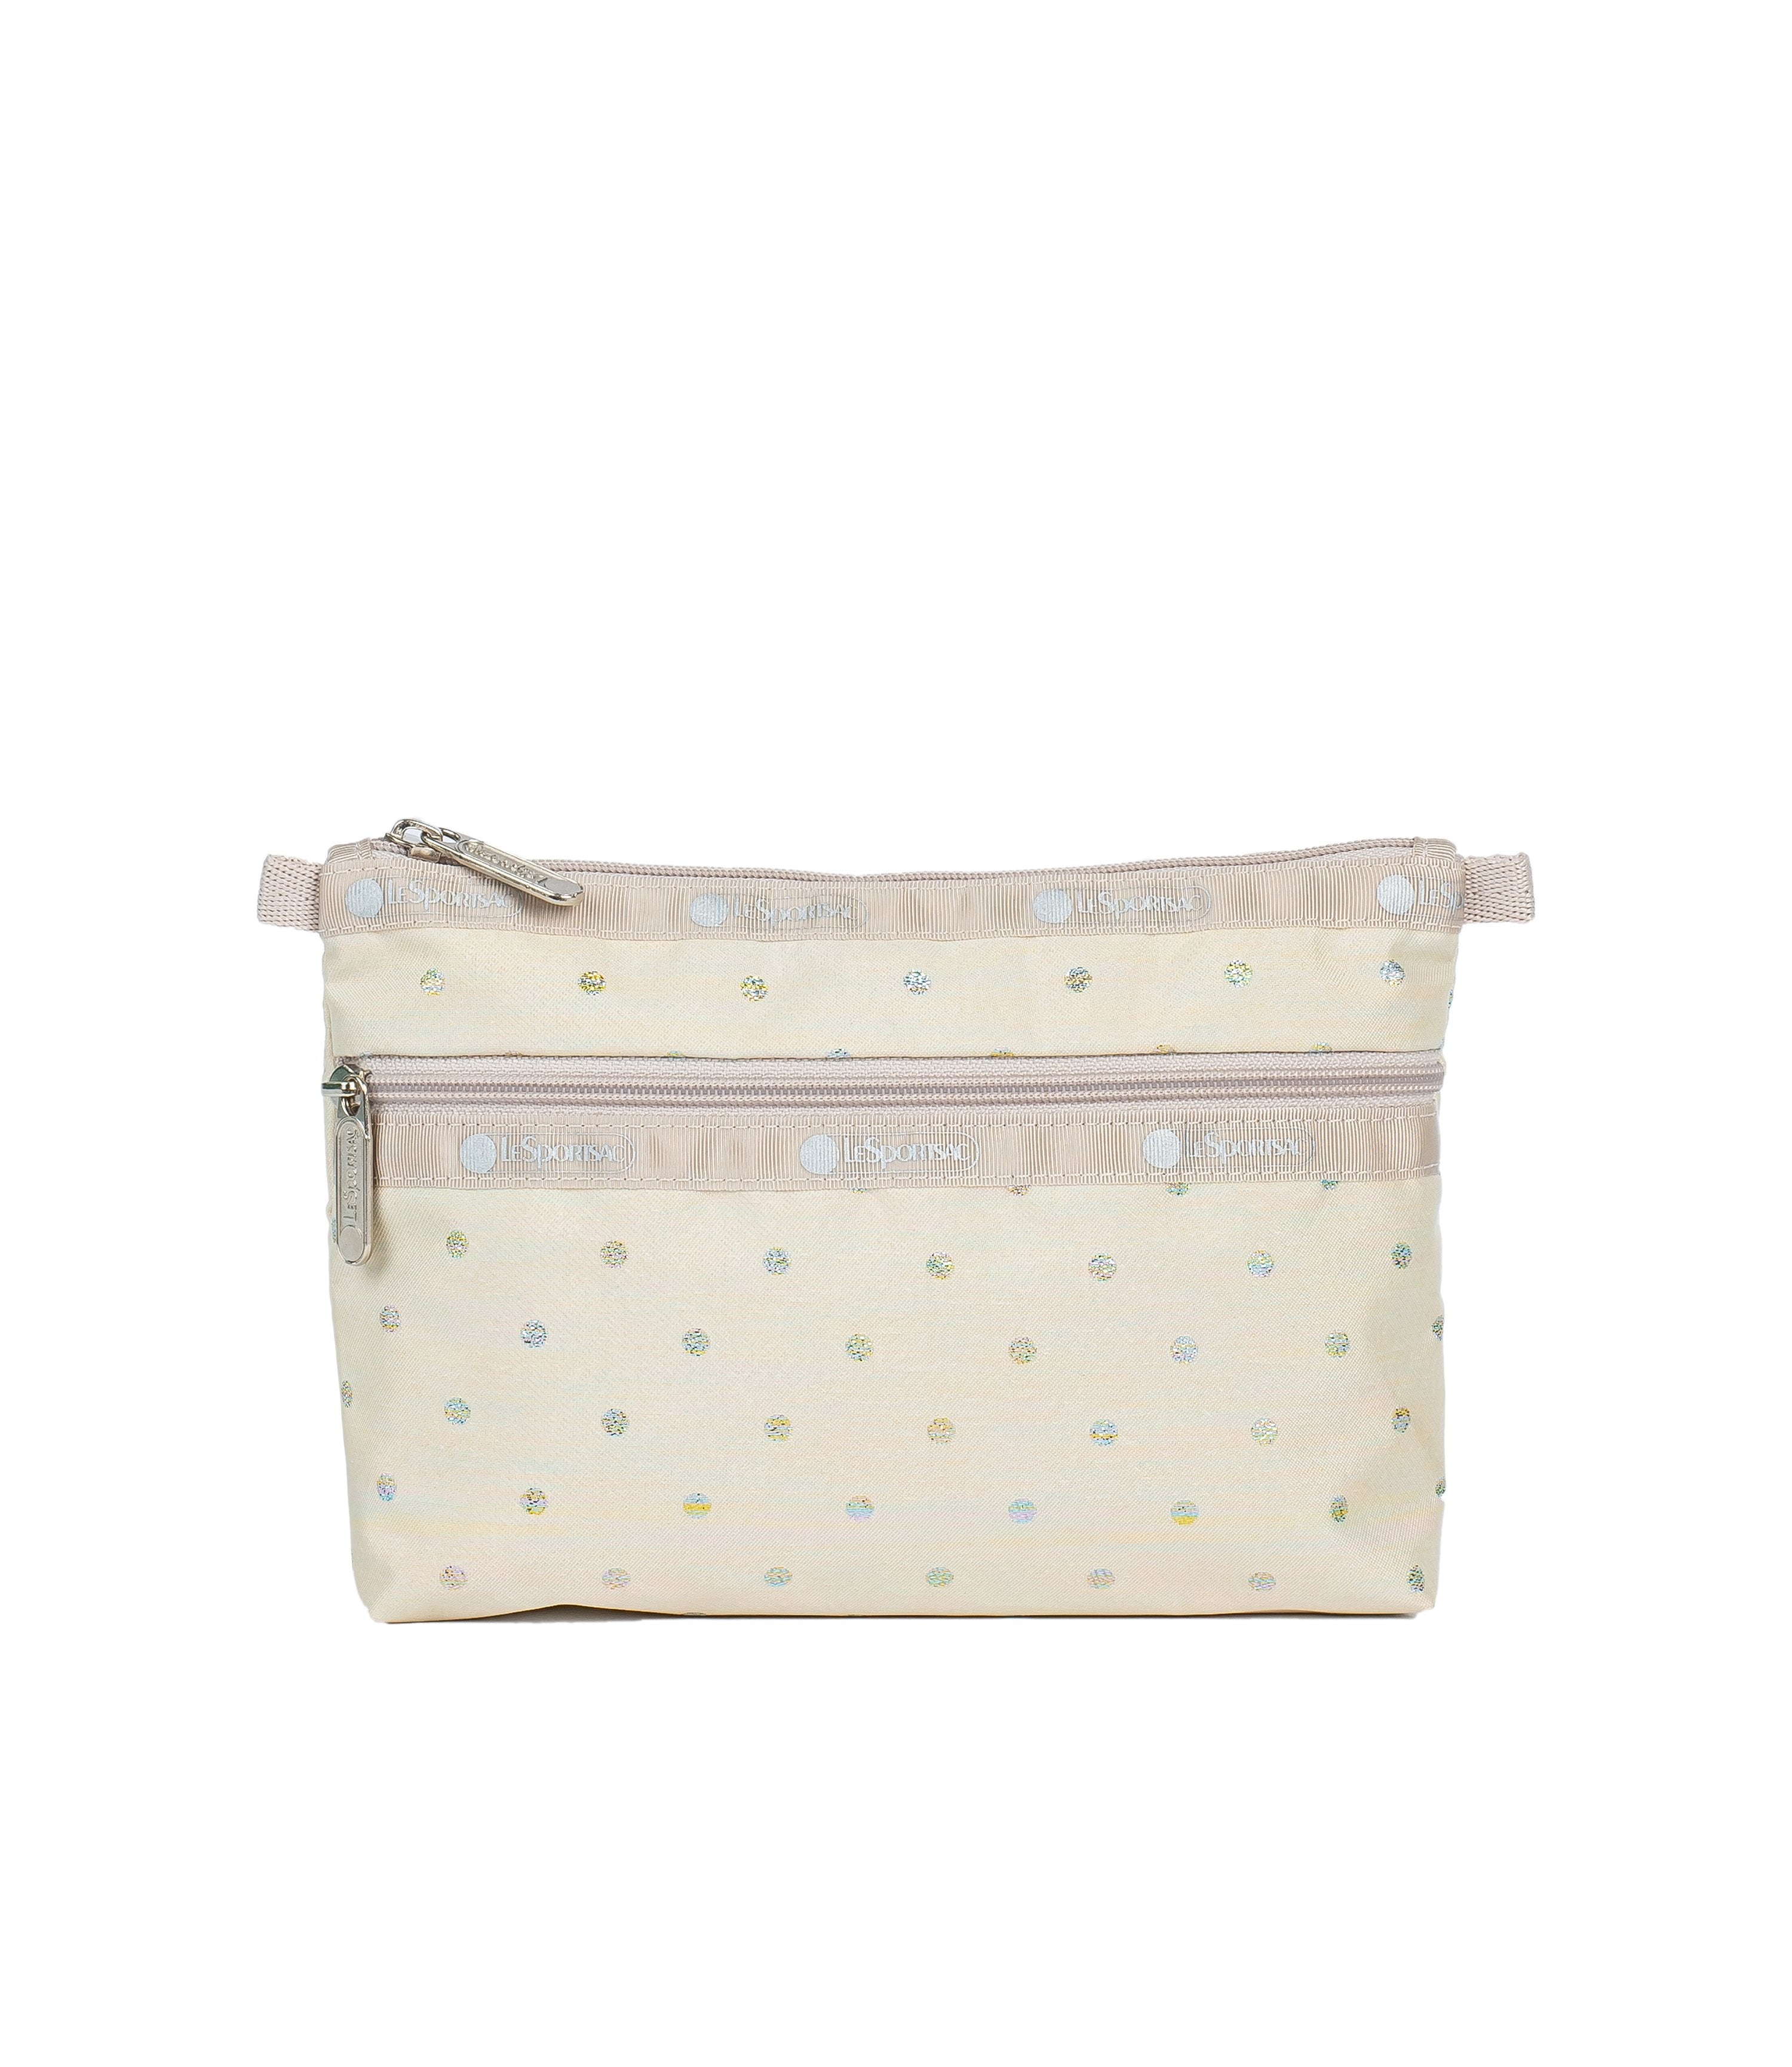 LeSportsac - Accessories - Cosmetic Clutch - Rainbow Dot jacquard